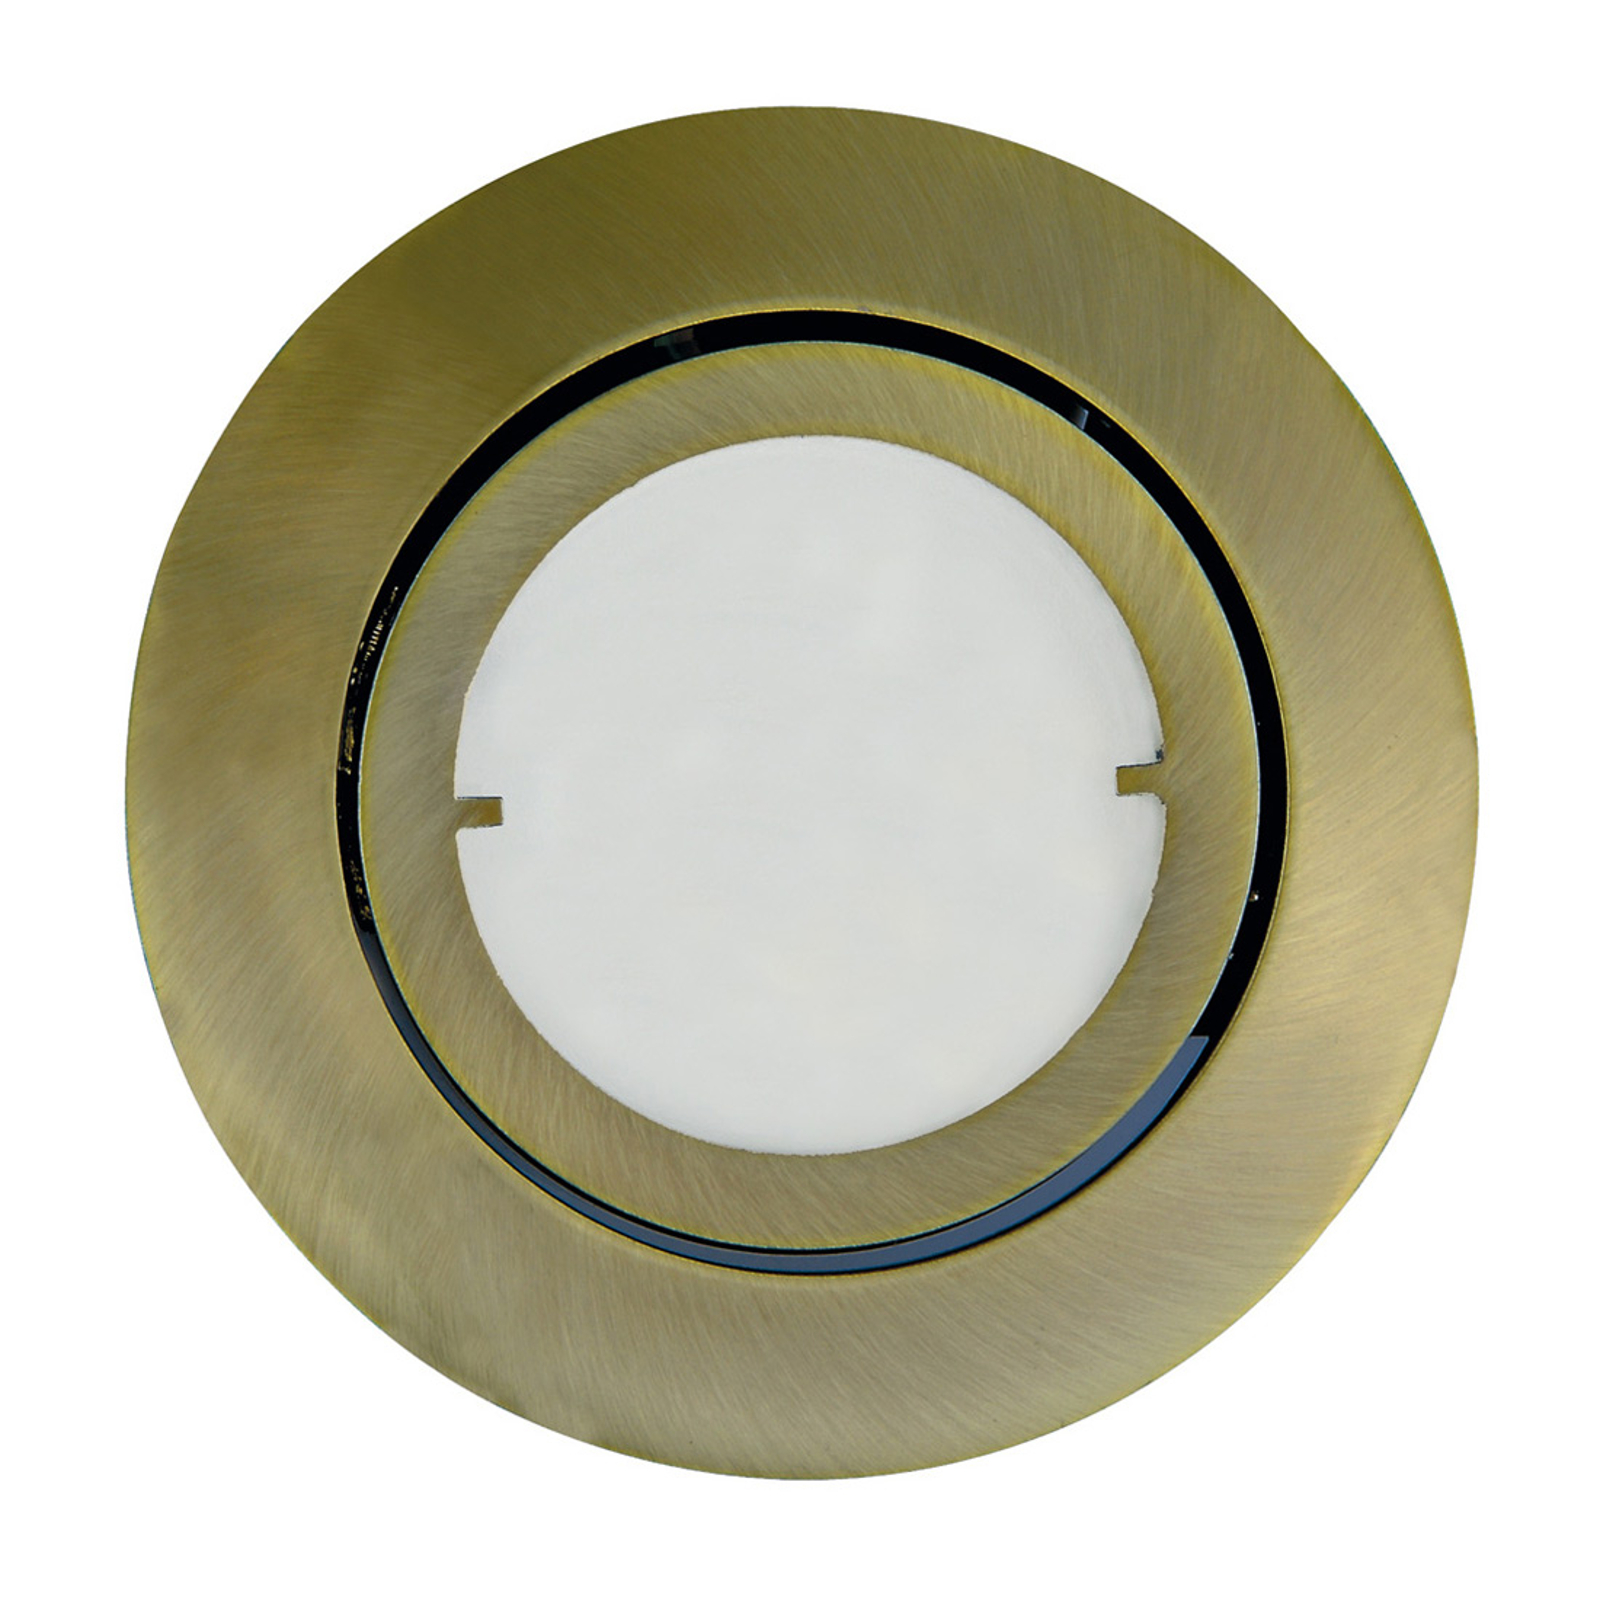 Joanie - LED recessed light in antique brass_1524120_1